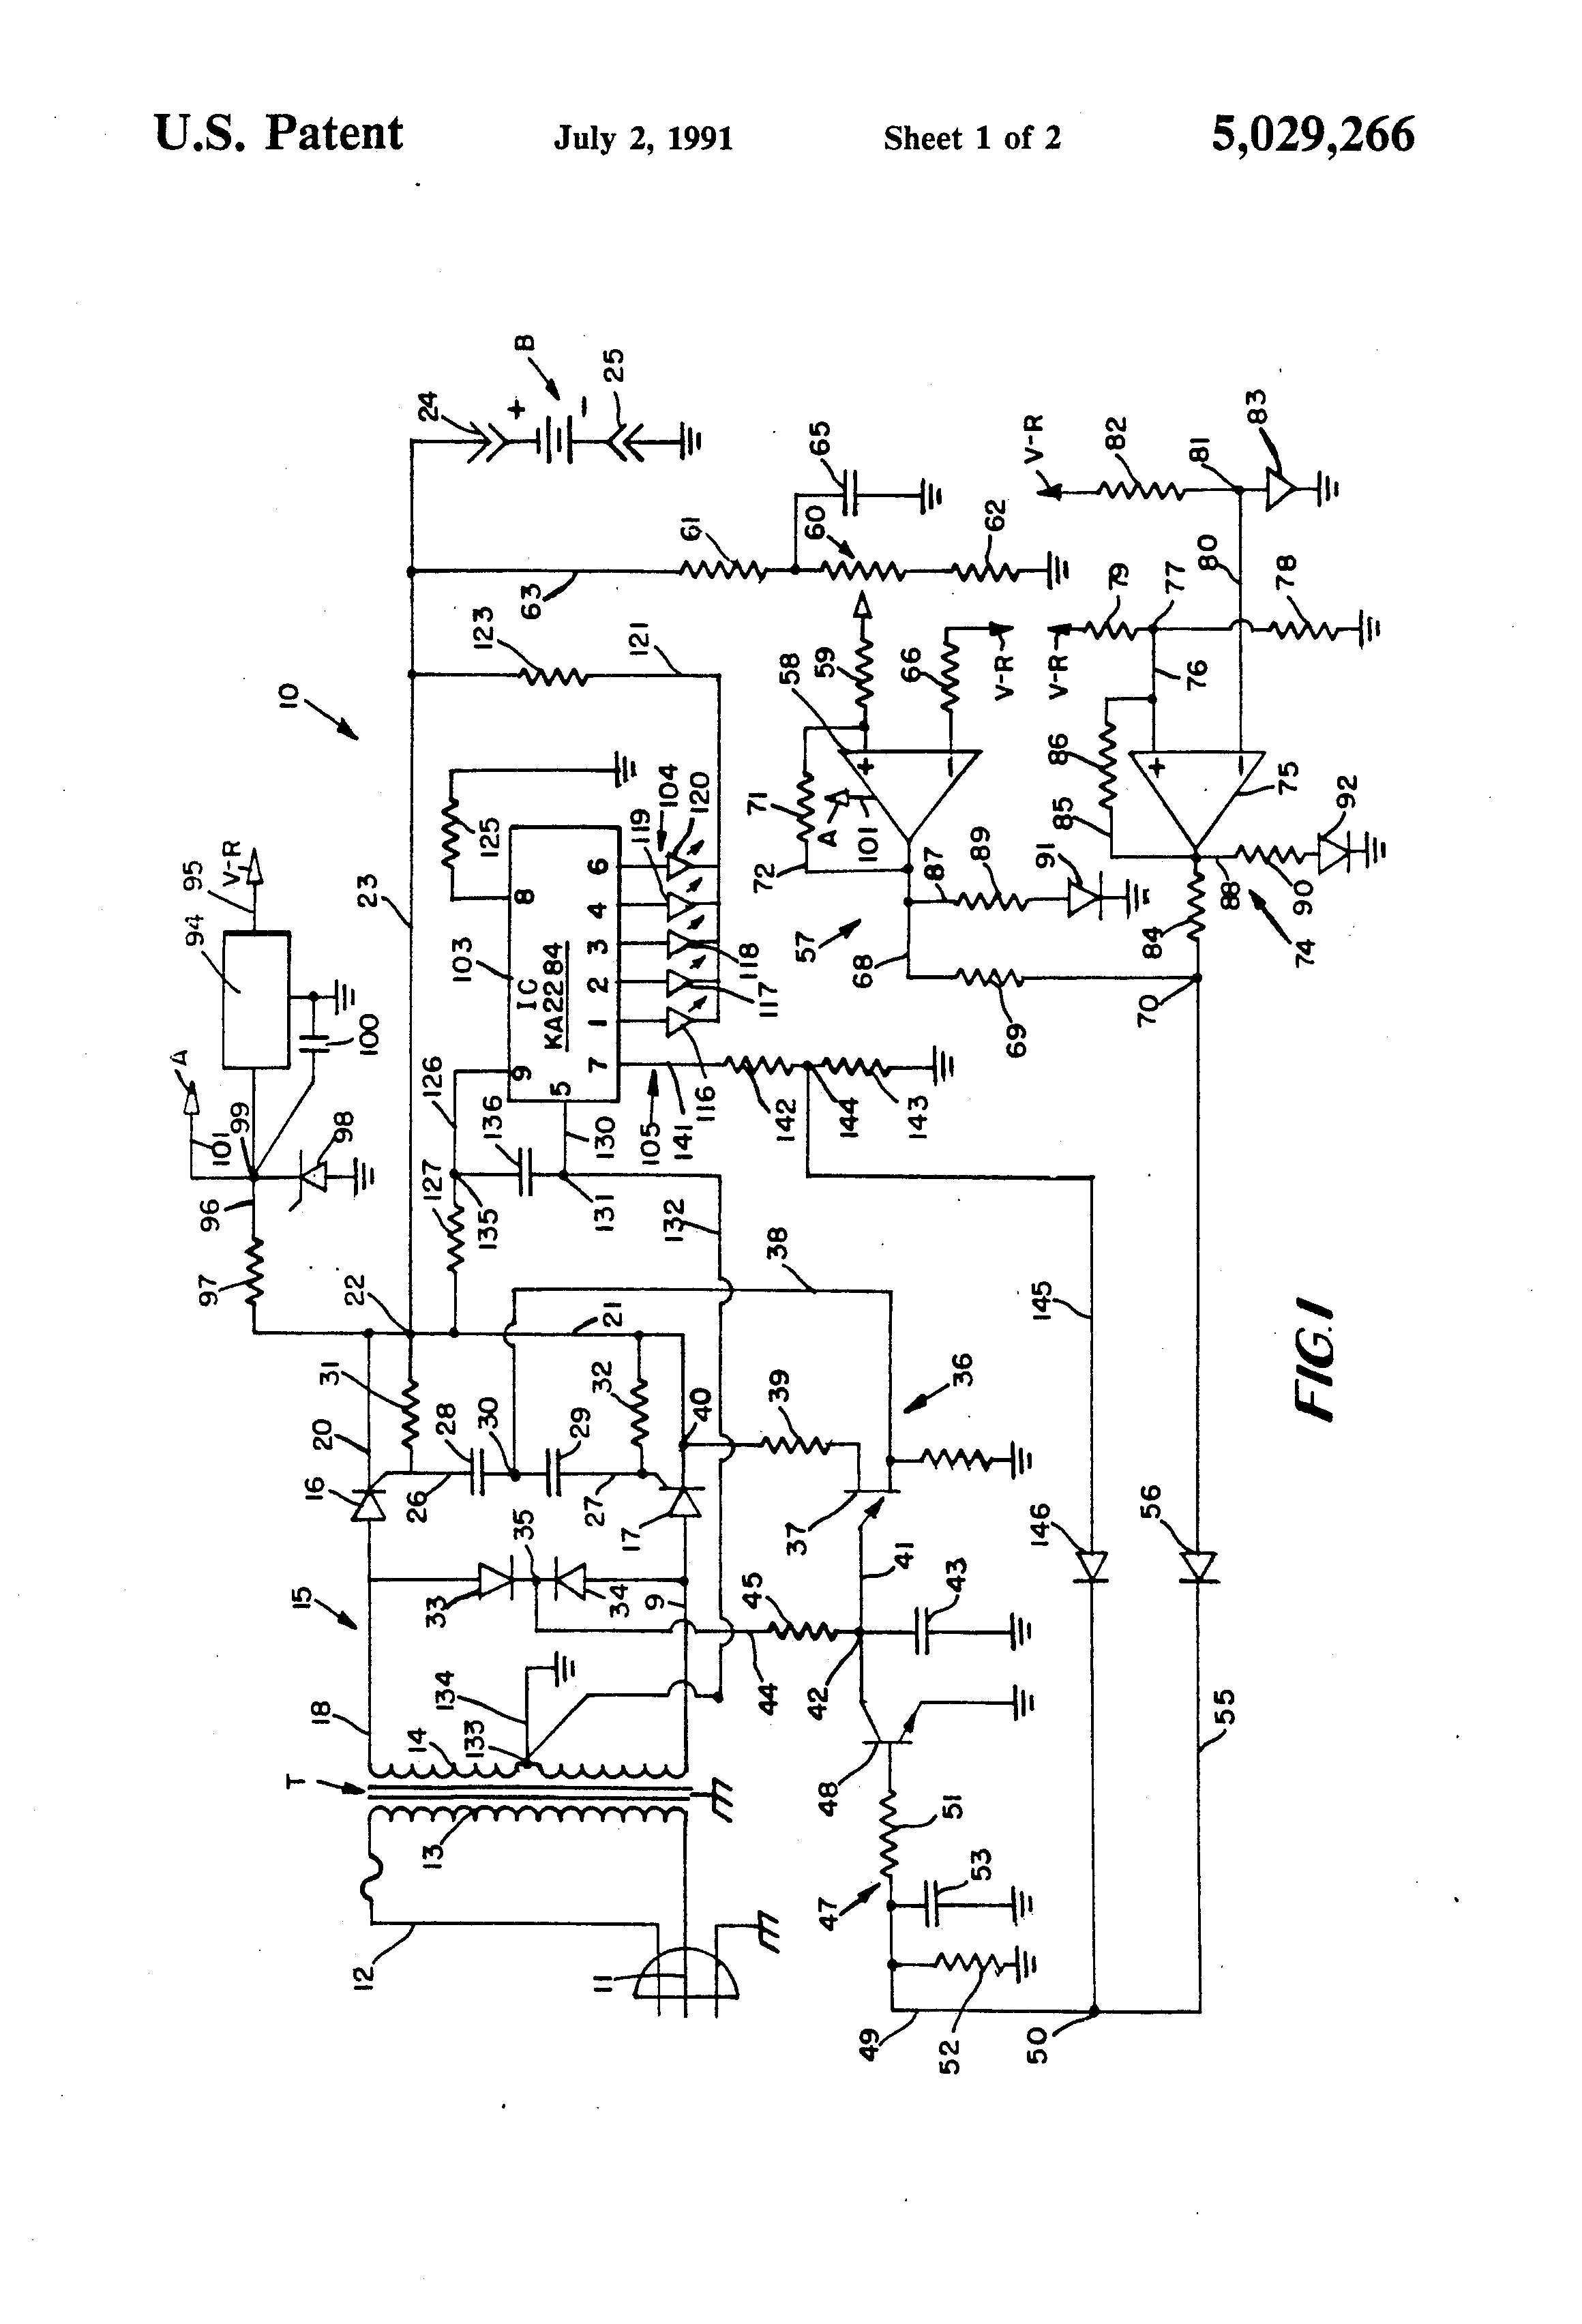 schauer battery charger wiring diagram schauer patent us5029266 controlled battery charging system google patents on schauer battery charger wiring diagram